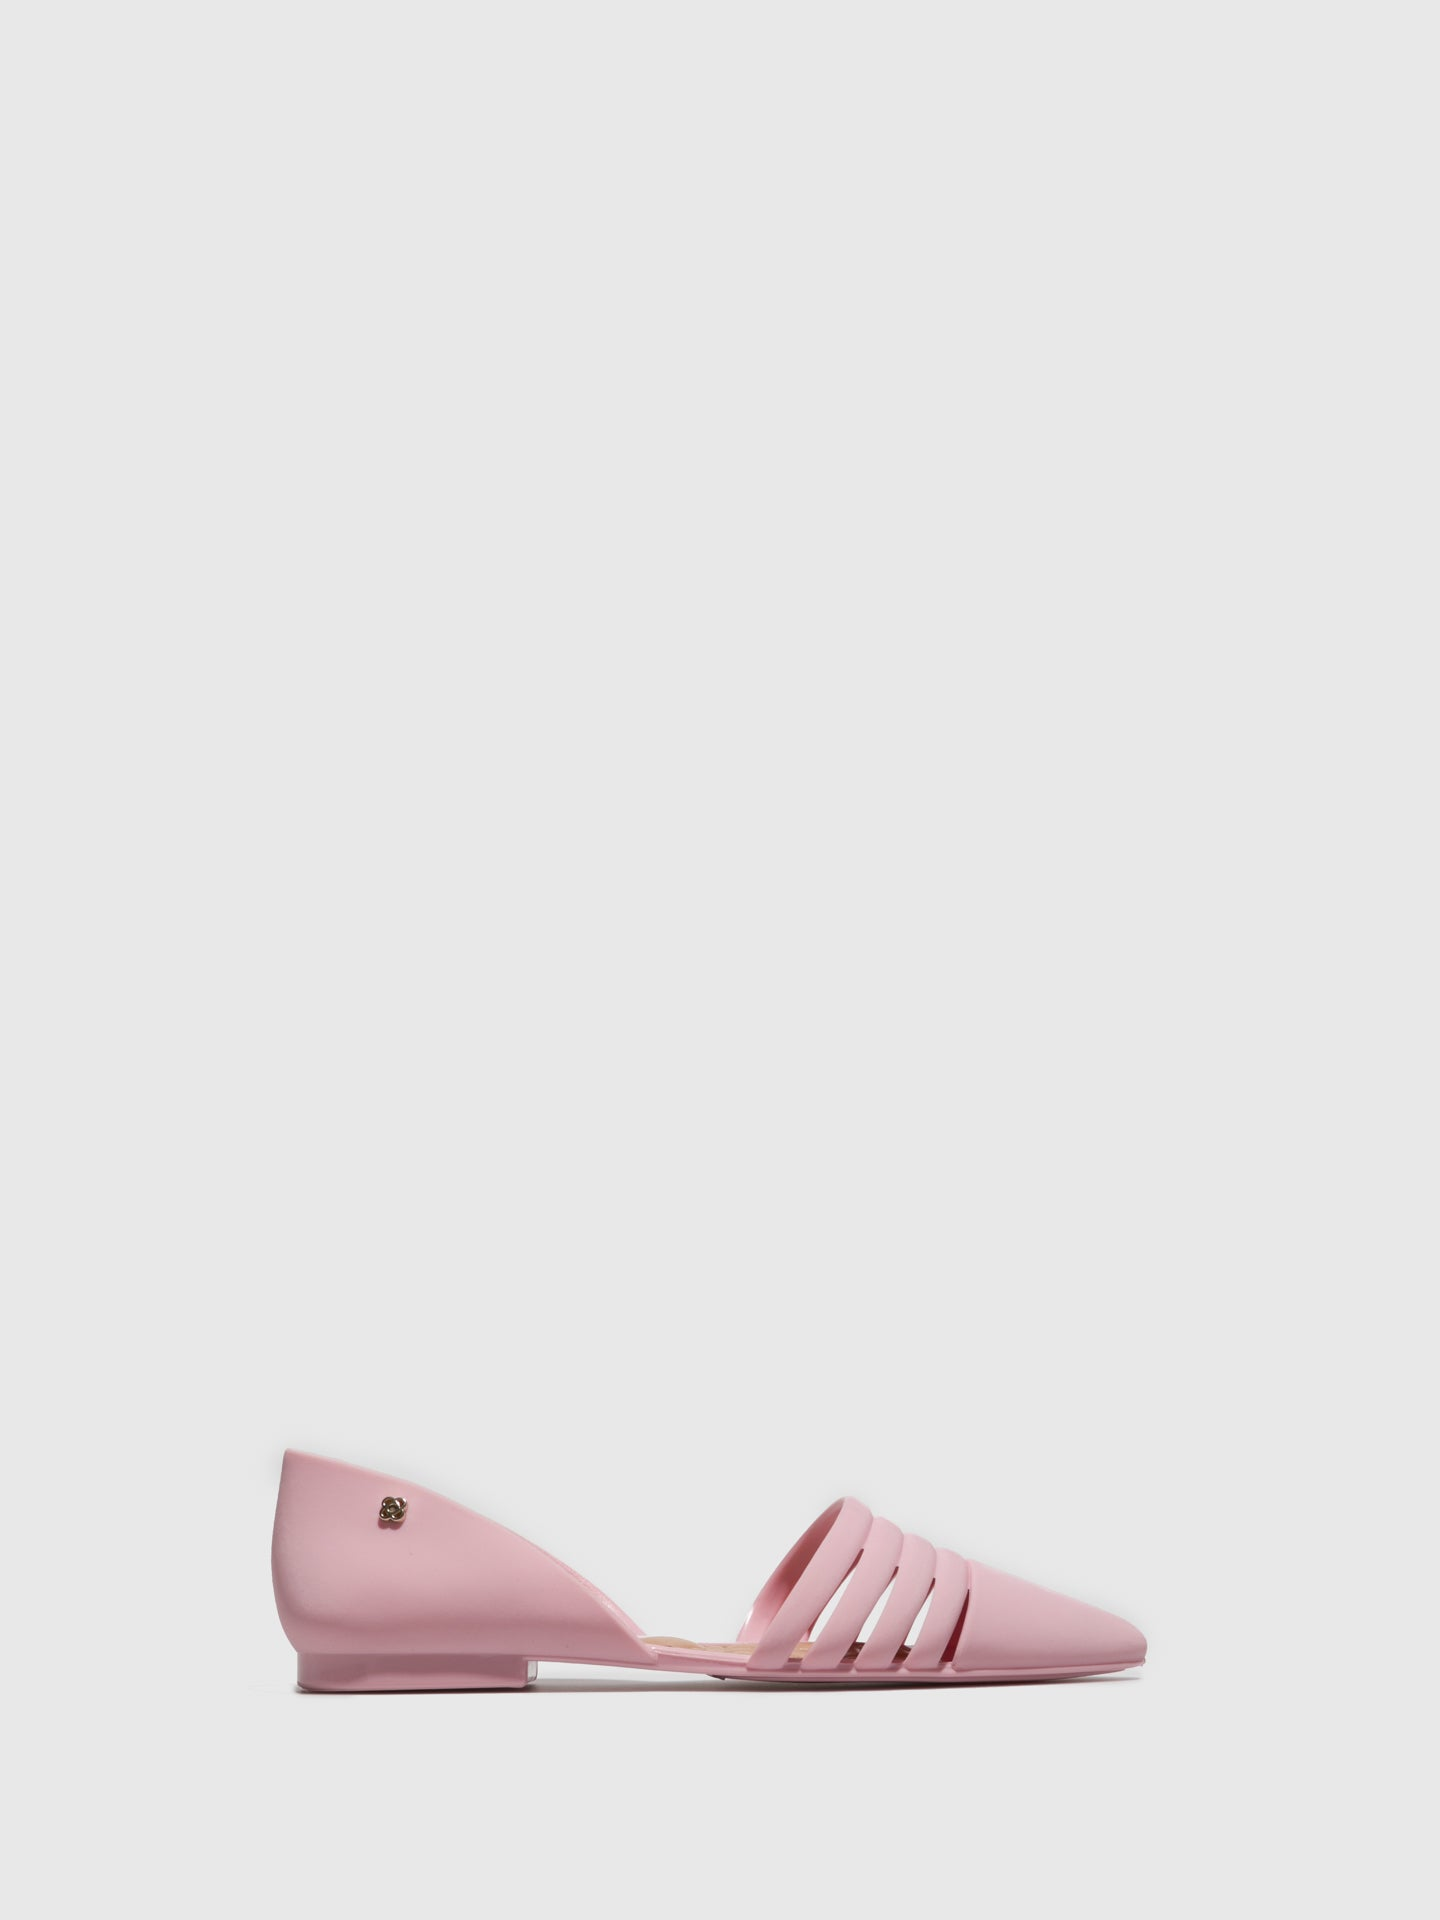 PETITE JOLIE by PARODI Pink Pointed Toe Ballerinas